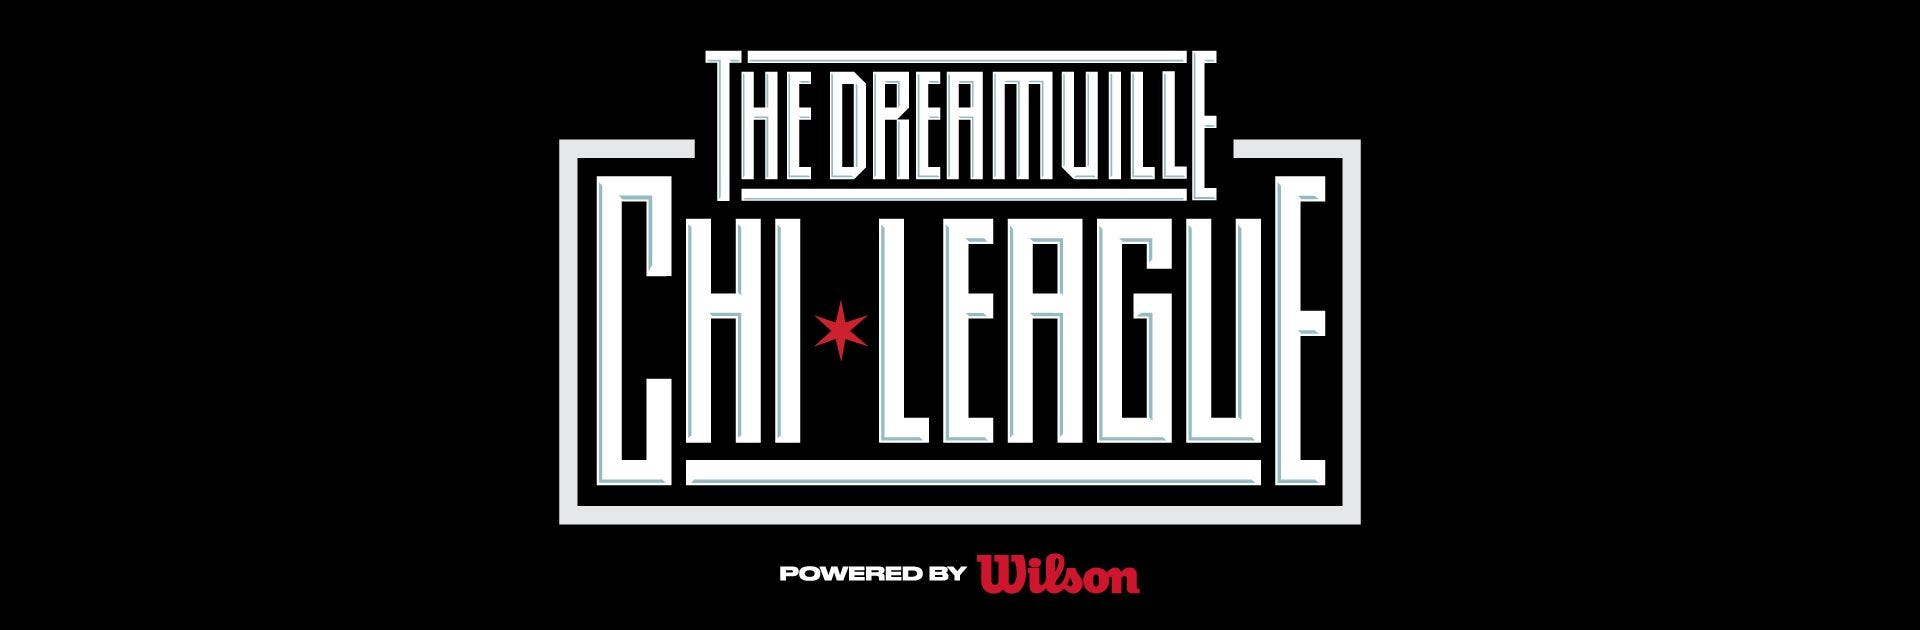 Chi League powered by Wilson